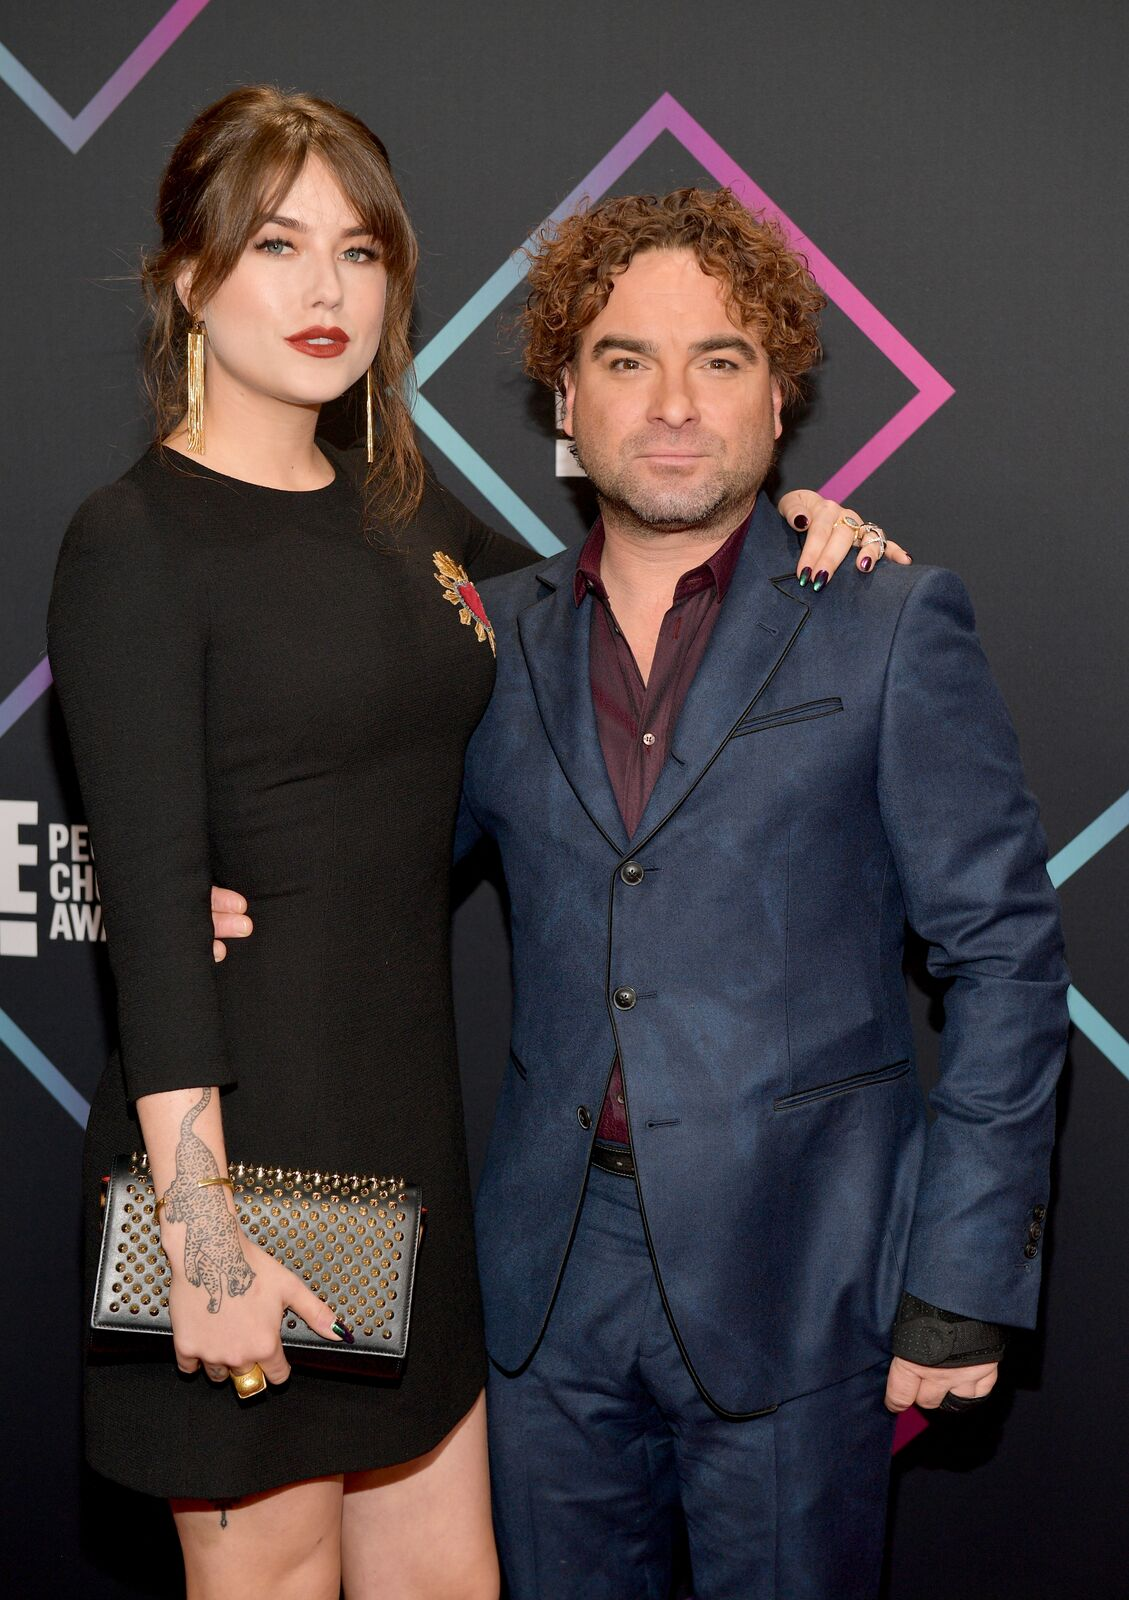 Johnny Galecki and Alaina Meyer attend the People's Choice Awards 2018 at Barker Hangar on November 11, 2018. | Source: Getty Images